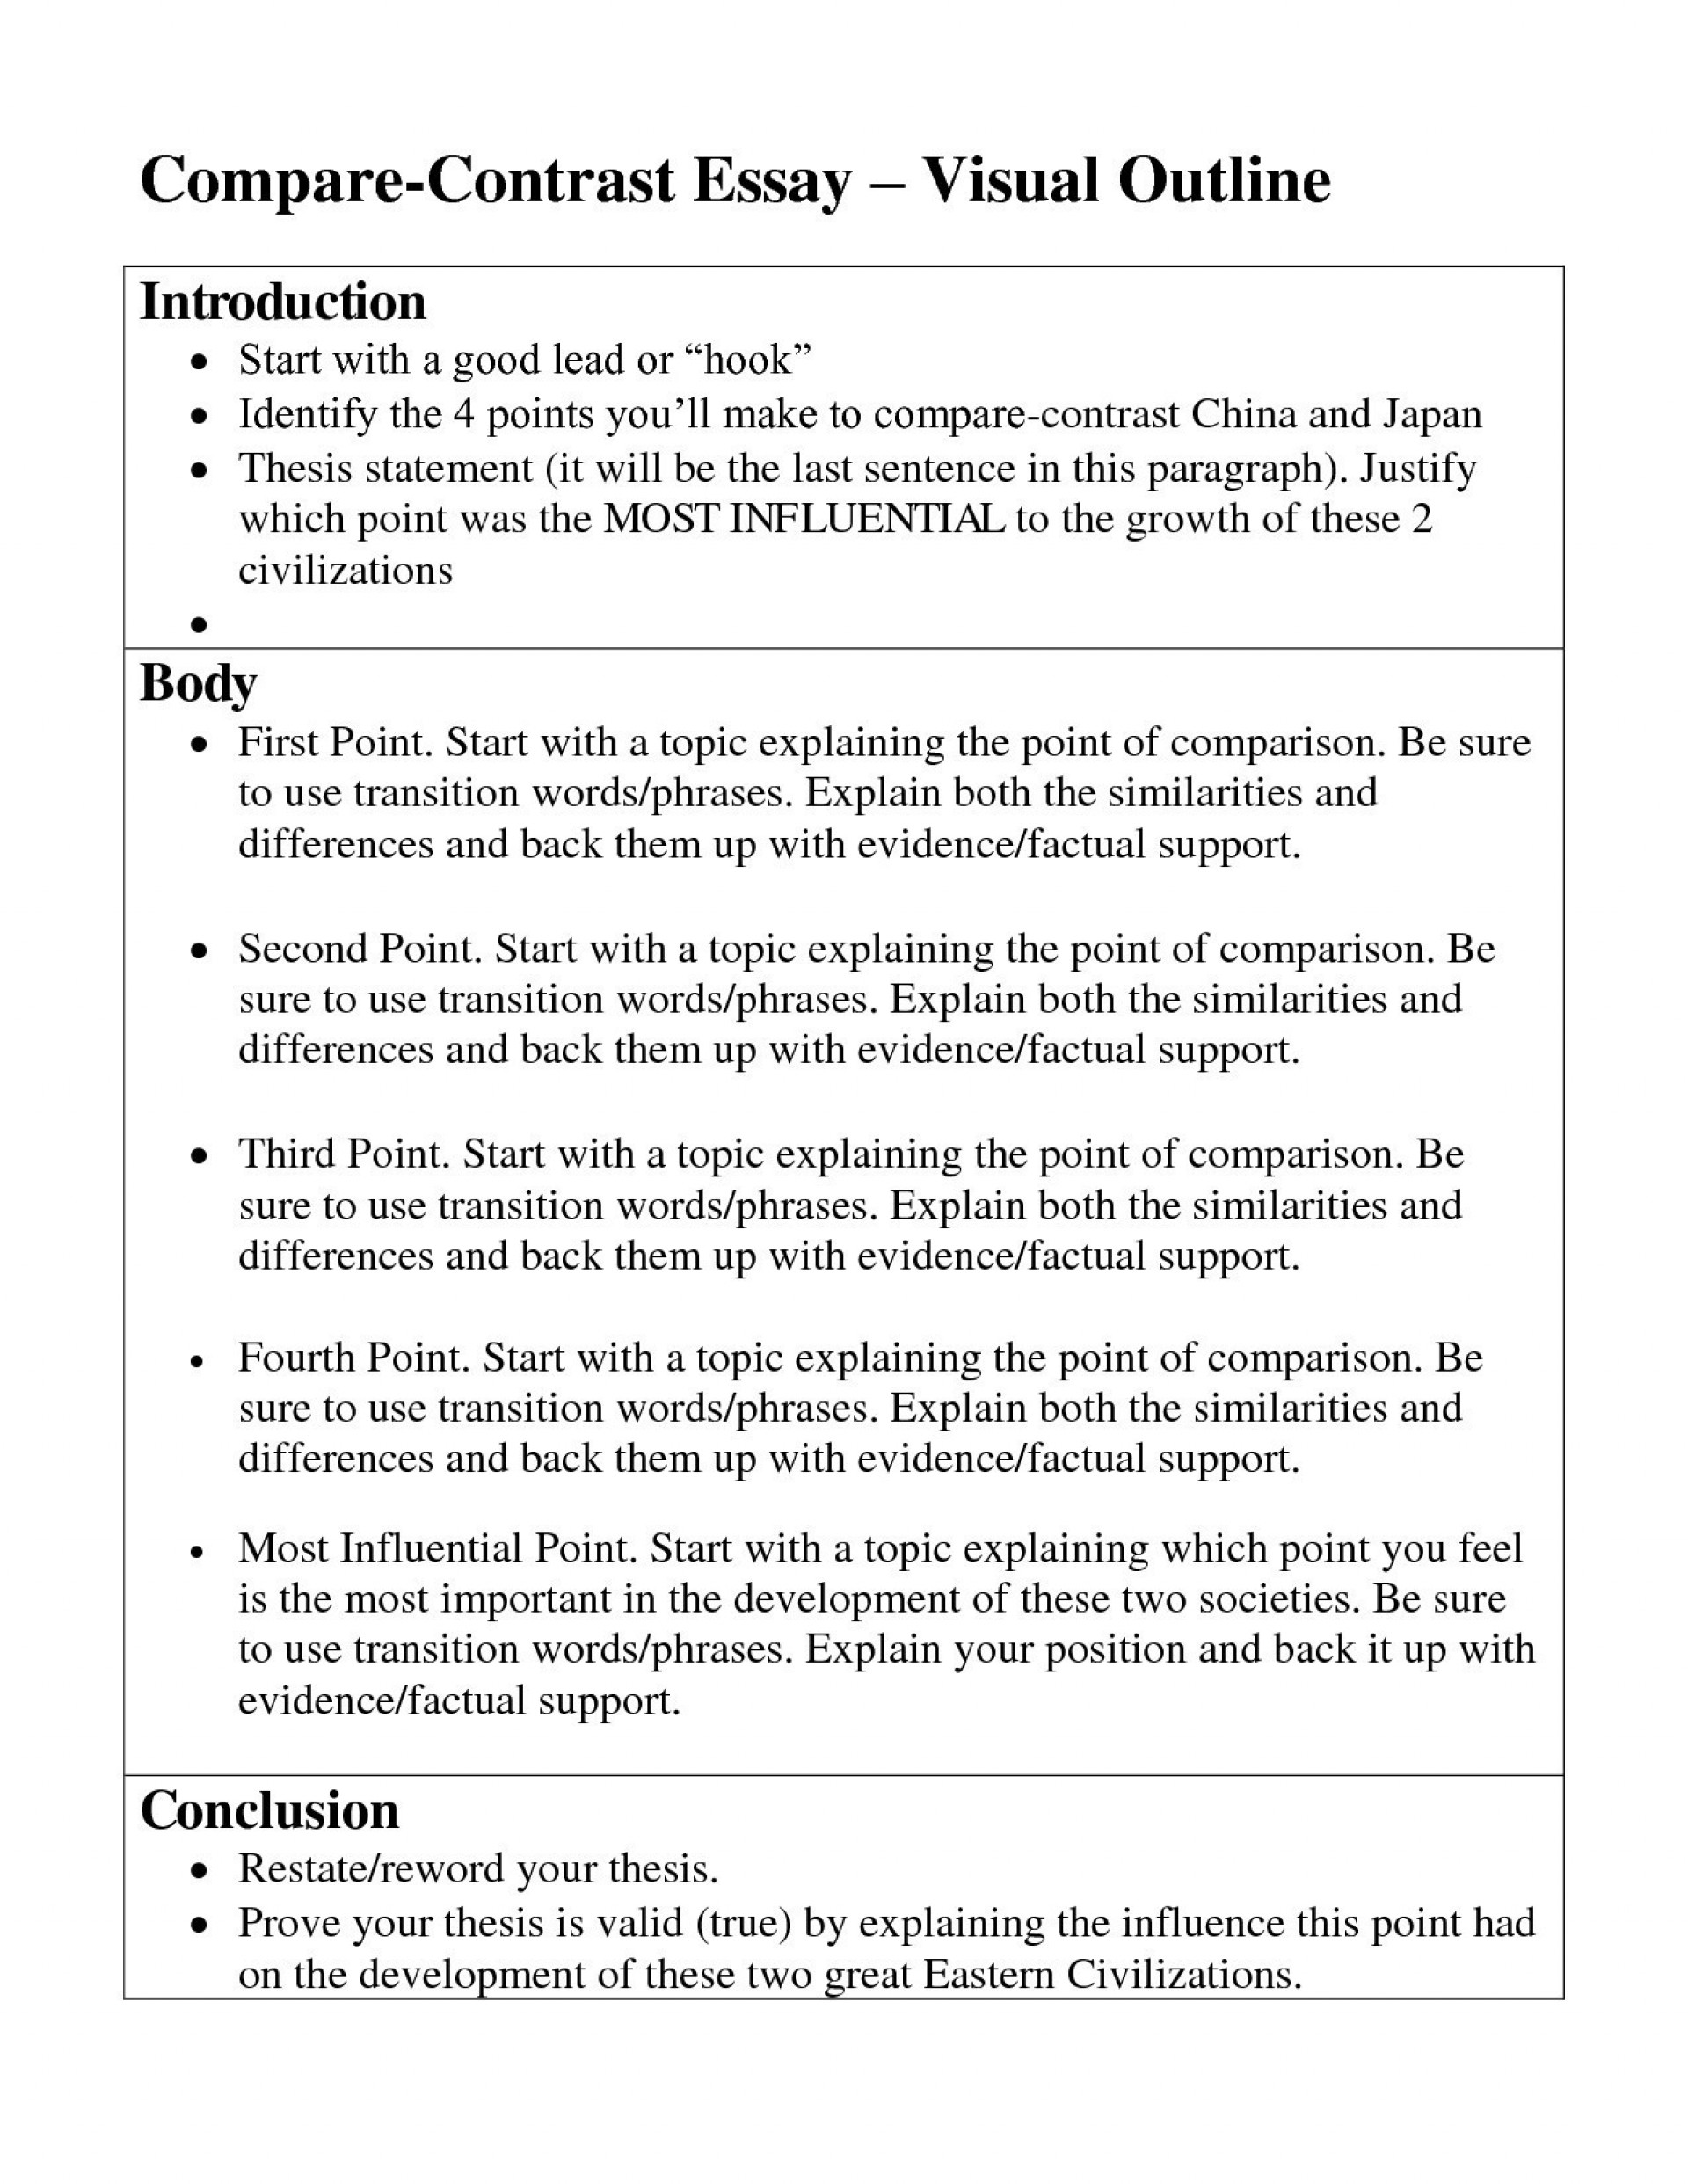 014 Good Hook For An Essay Writing Hooks Worksheet Refrence Laws Fresh How To Write Ess Argumentative Narrative The Best College Sentence Informative About Yourself Impressive A Odyssey 1920